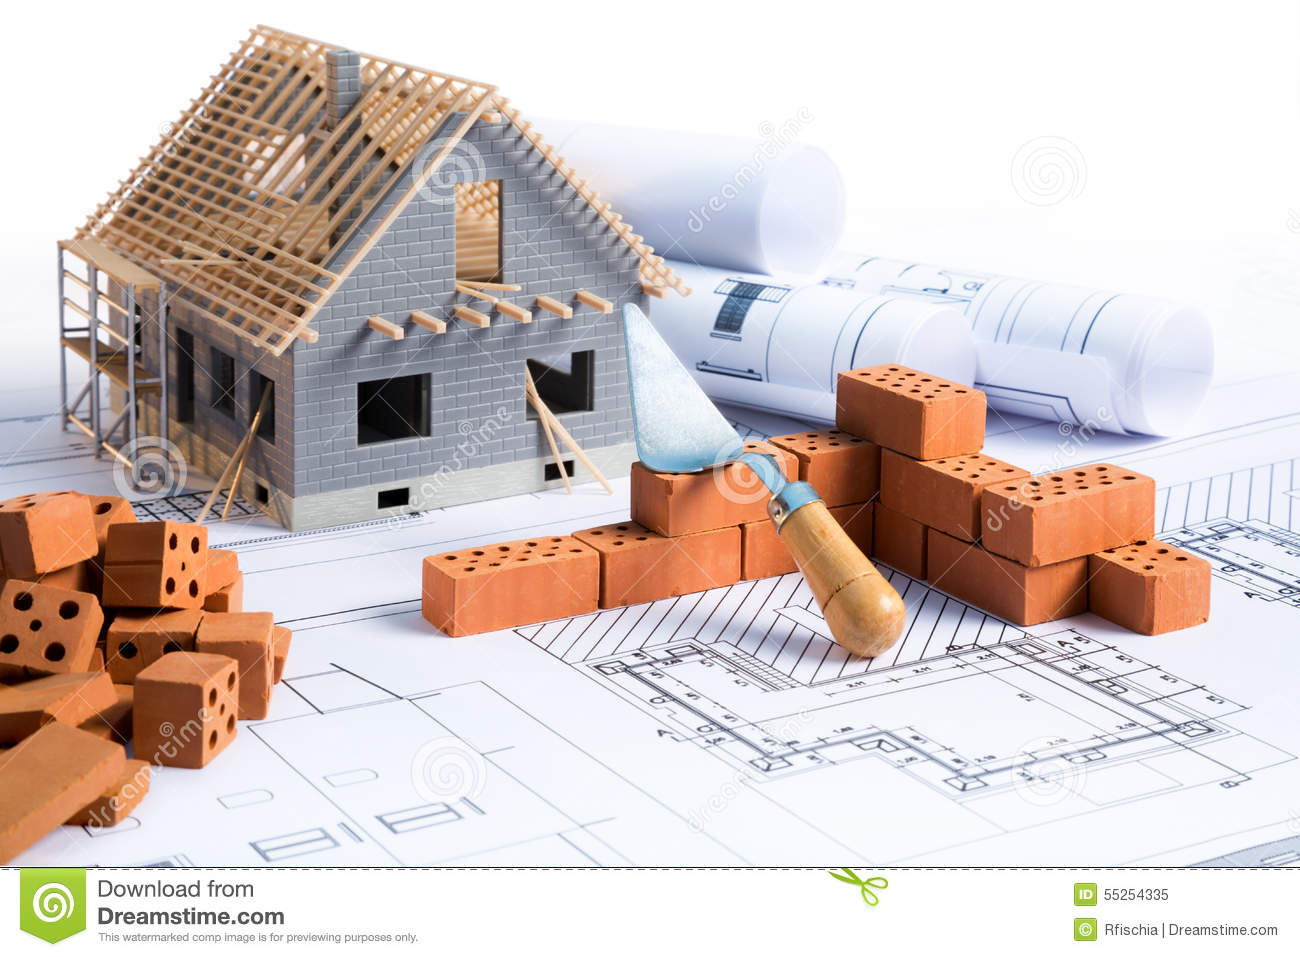 House in construction project stock image image of for Image batiment